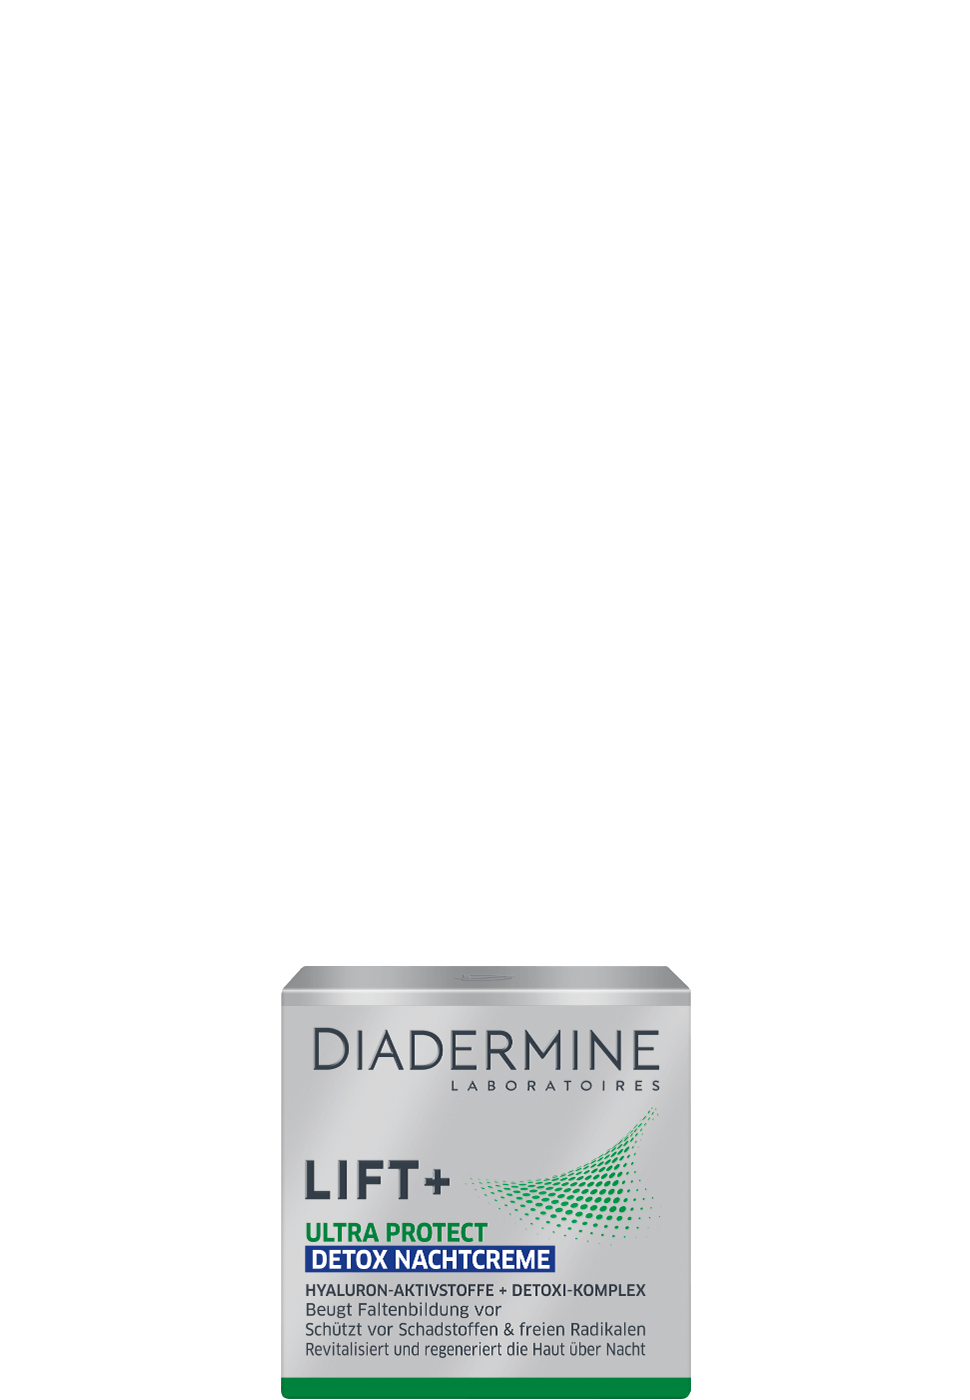 diadermine_de_lift_plus_ultra_protect_detox_nachtcreme_970x1400